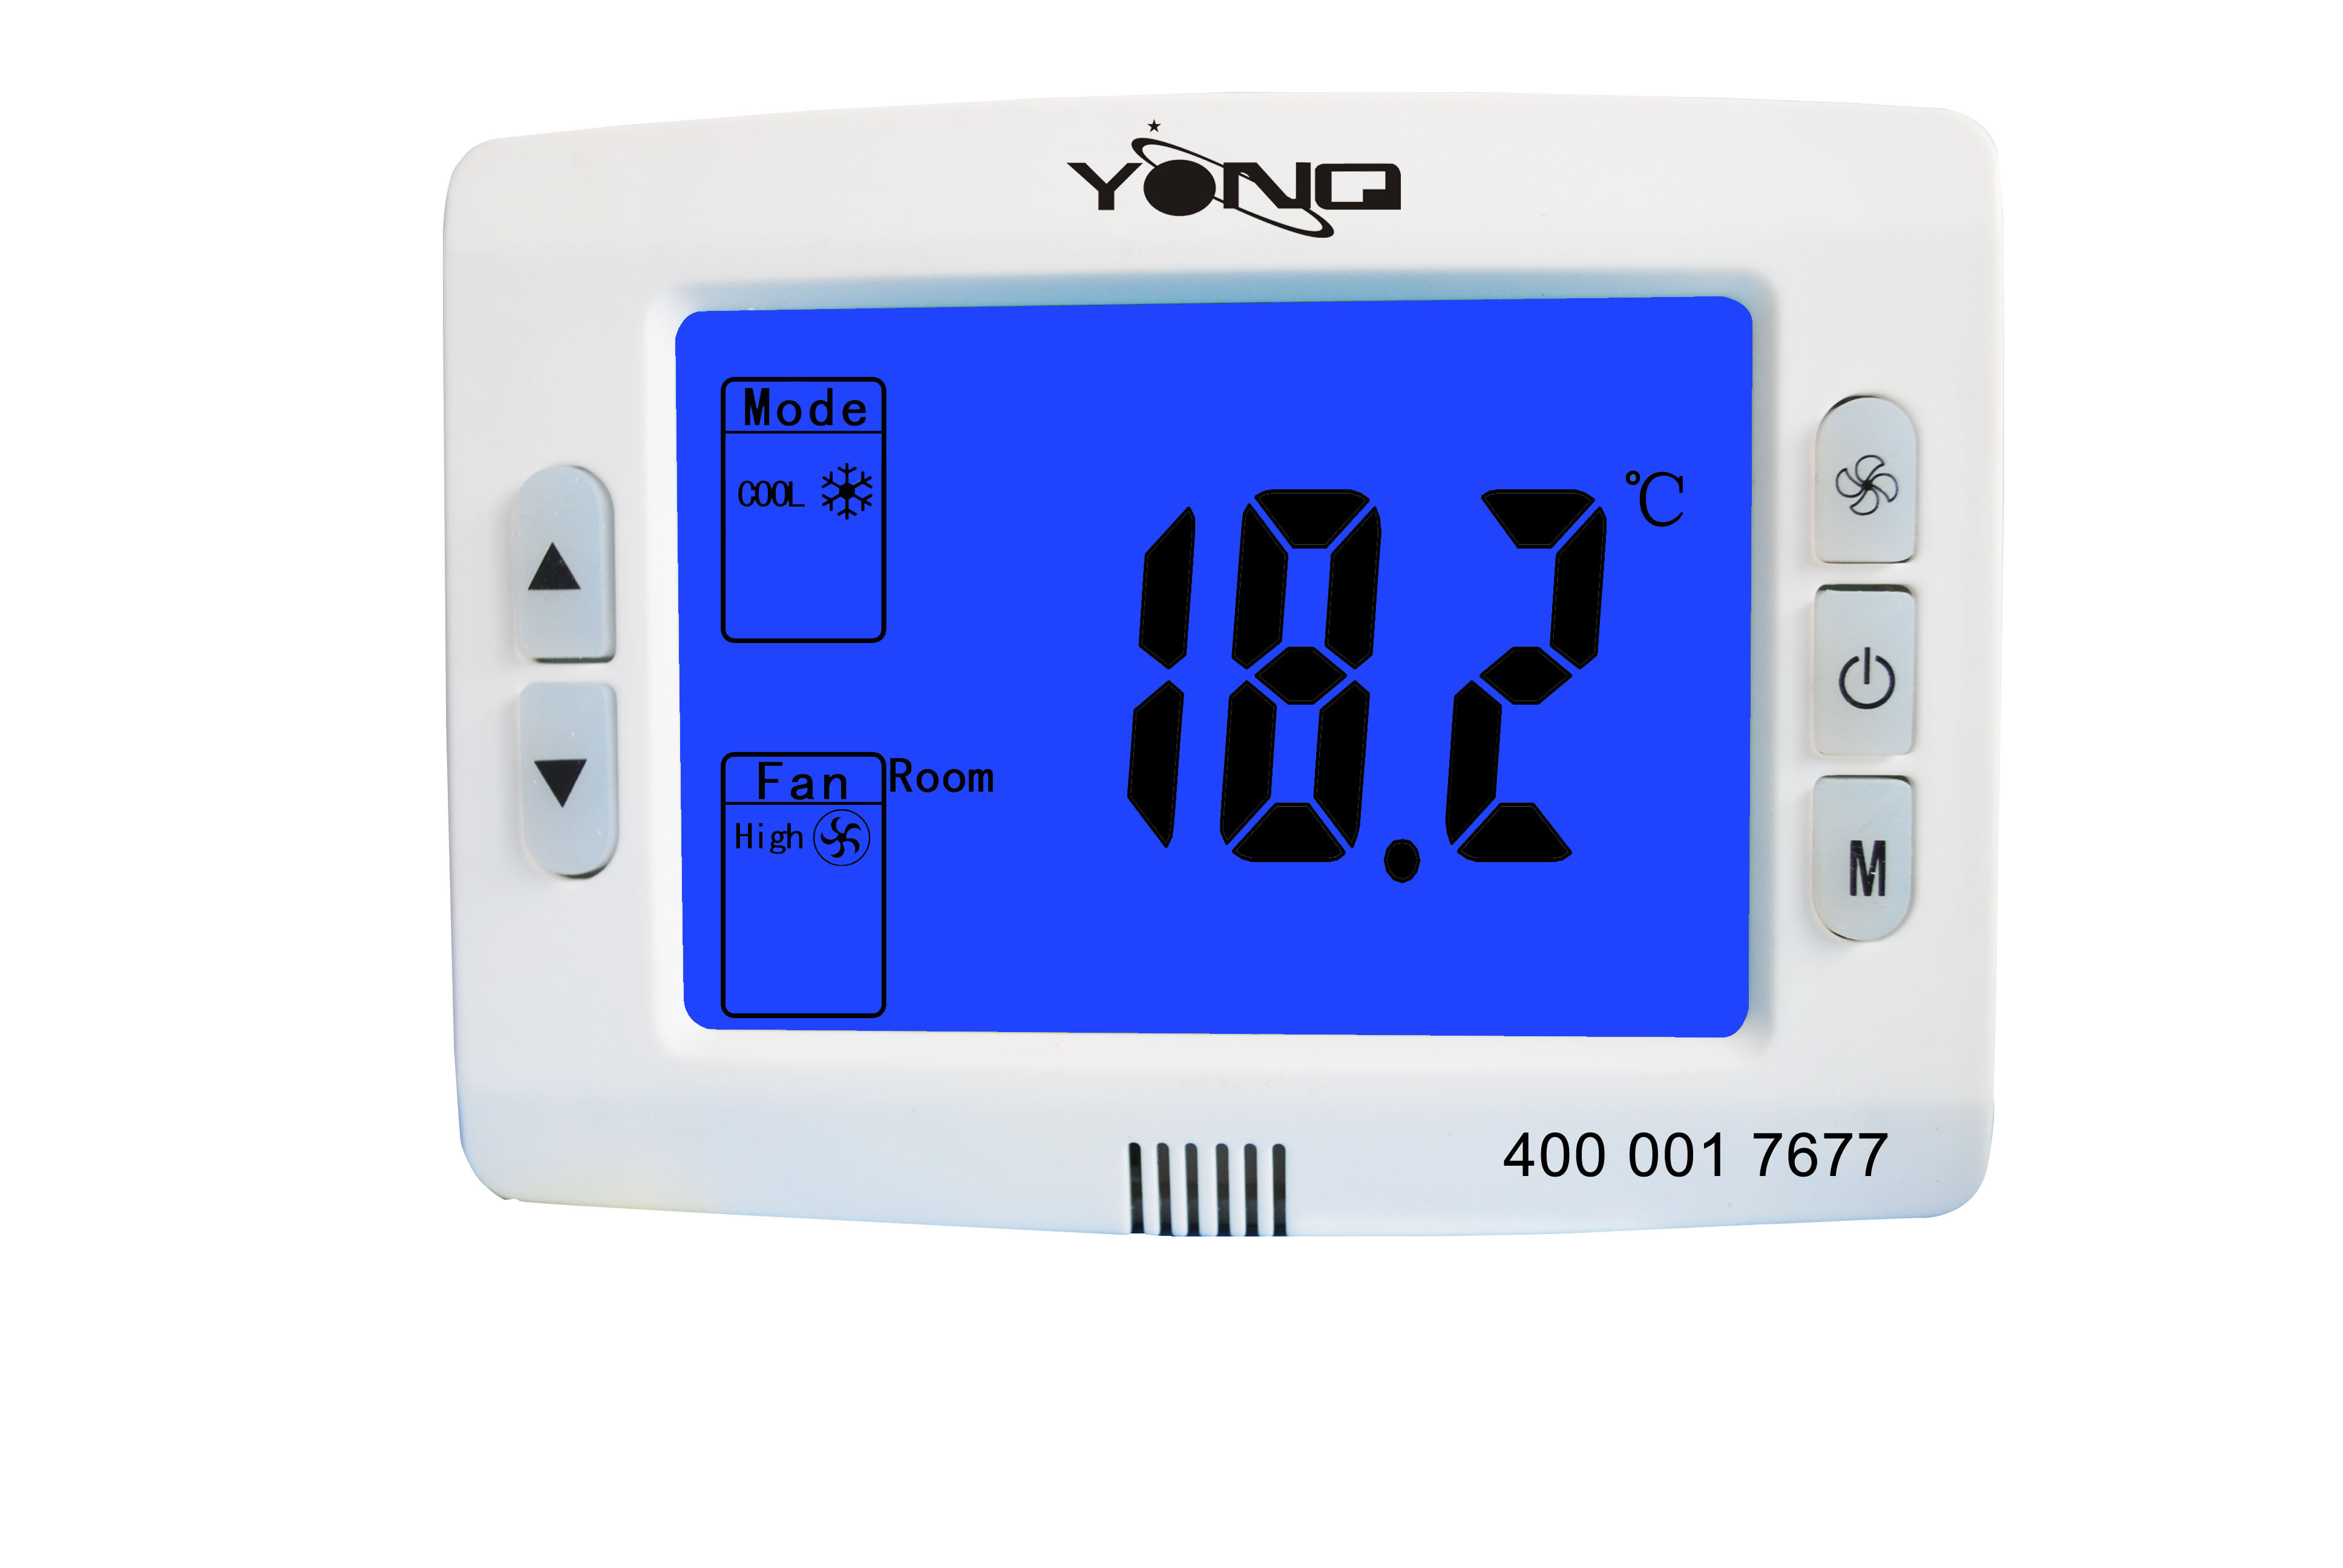 YKC510 Series, Large LCD Digital Thermostat, 220 VAC±10%, 2-pipe Thermostat For Fan Coil, Control 2 / 3 Line Valves